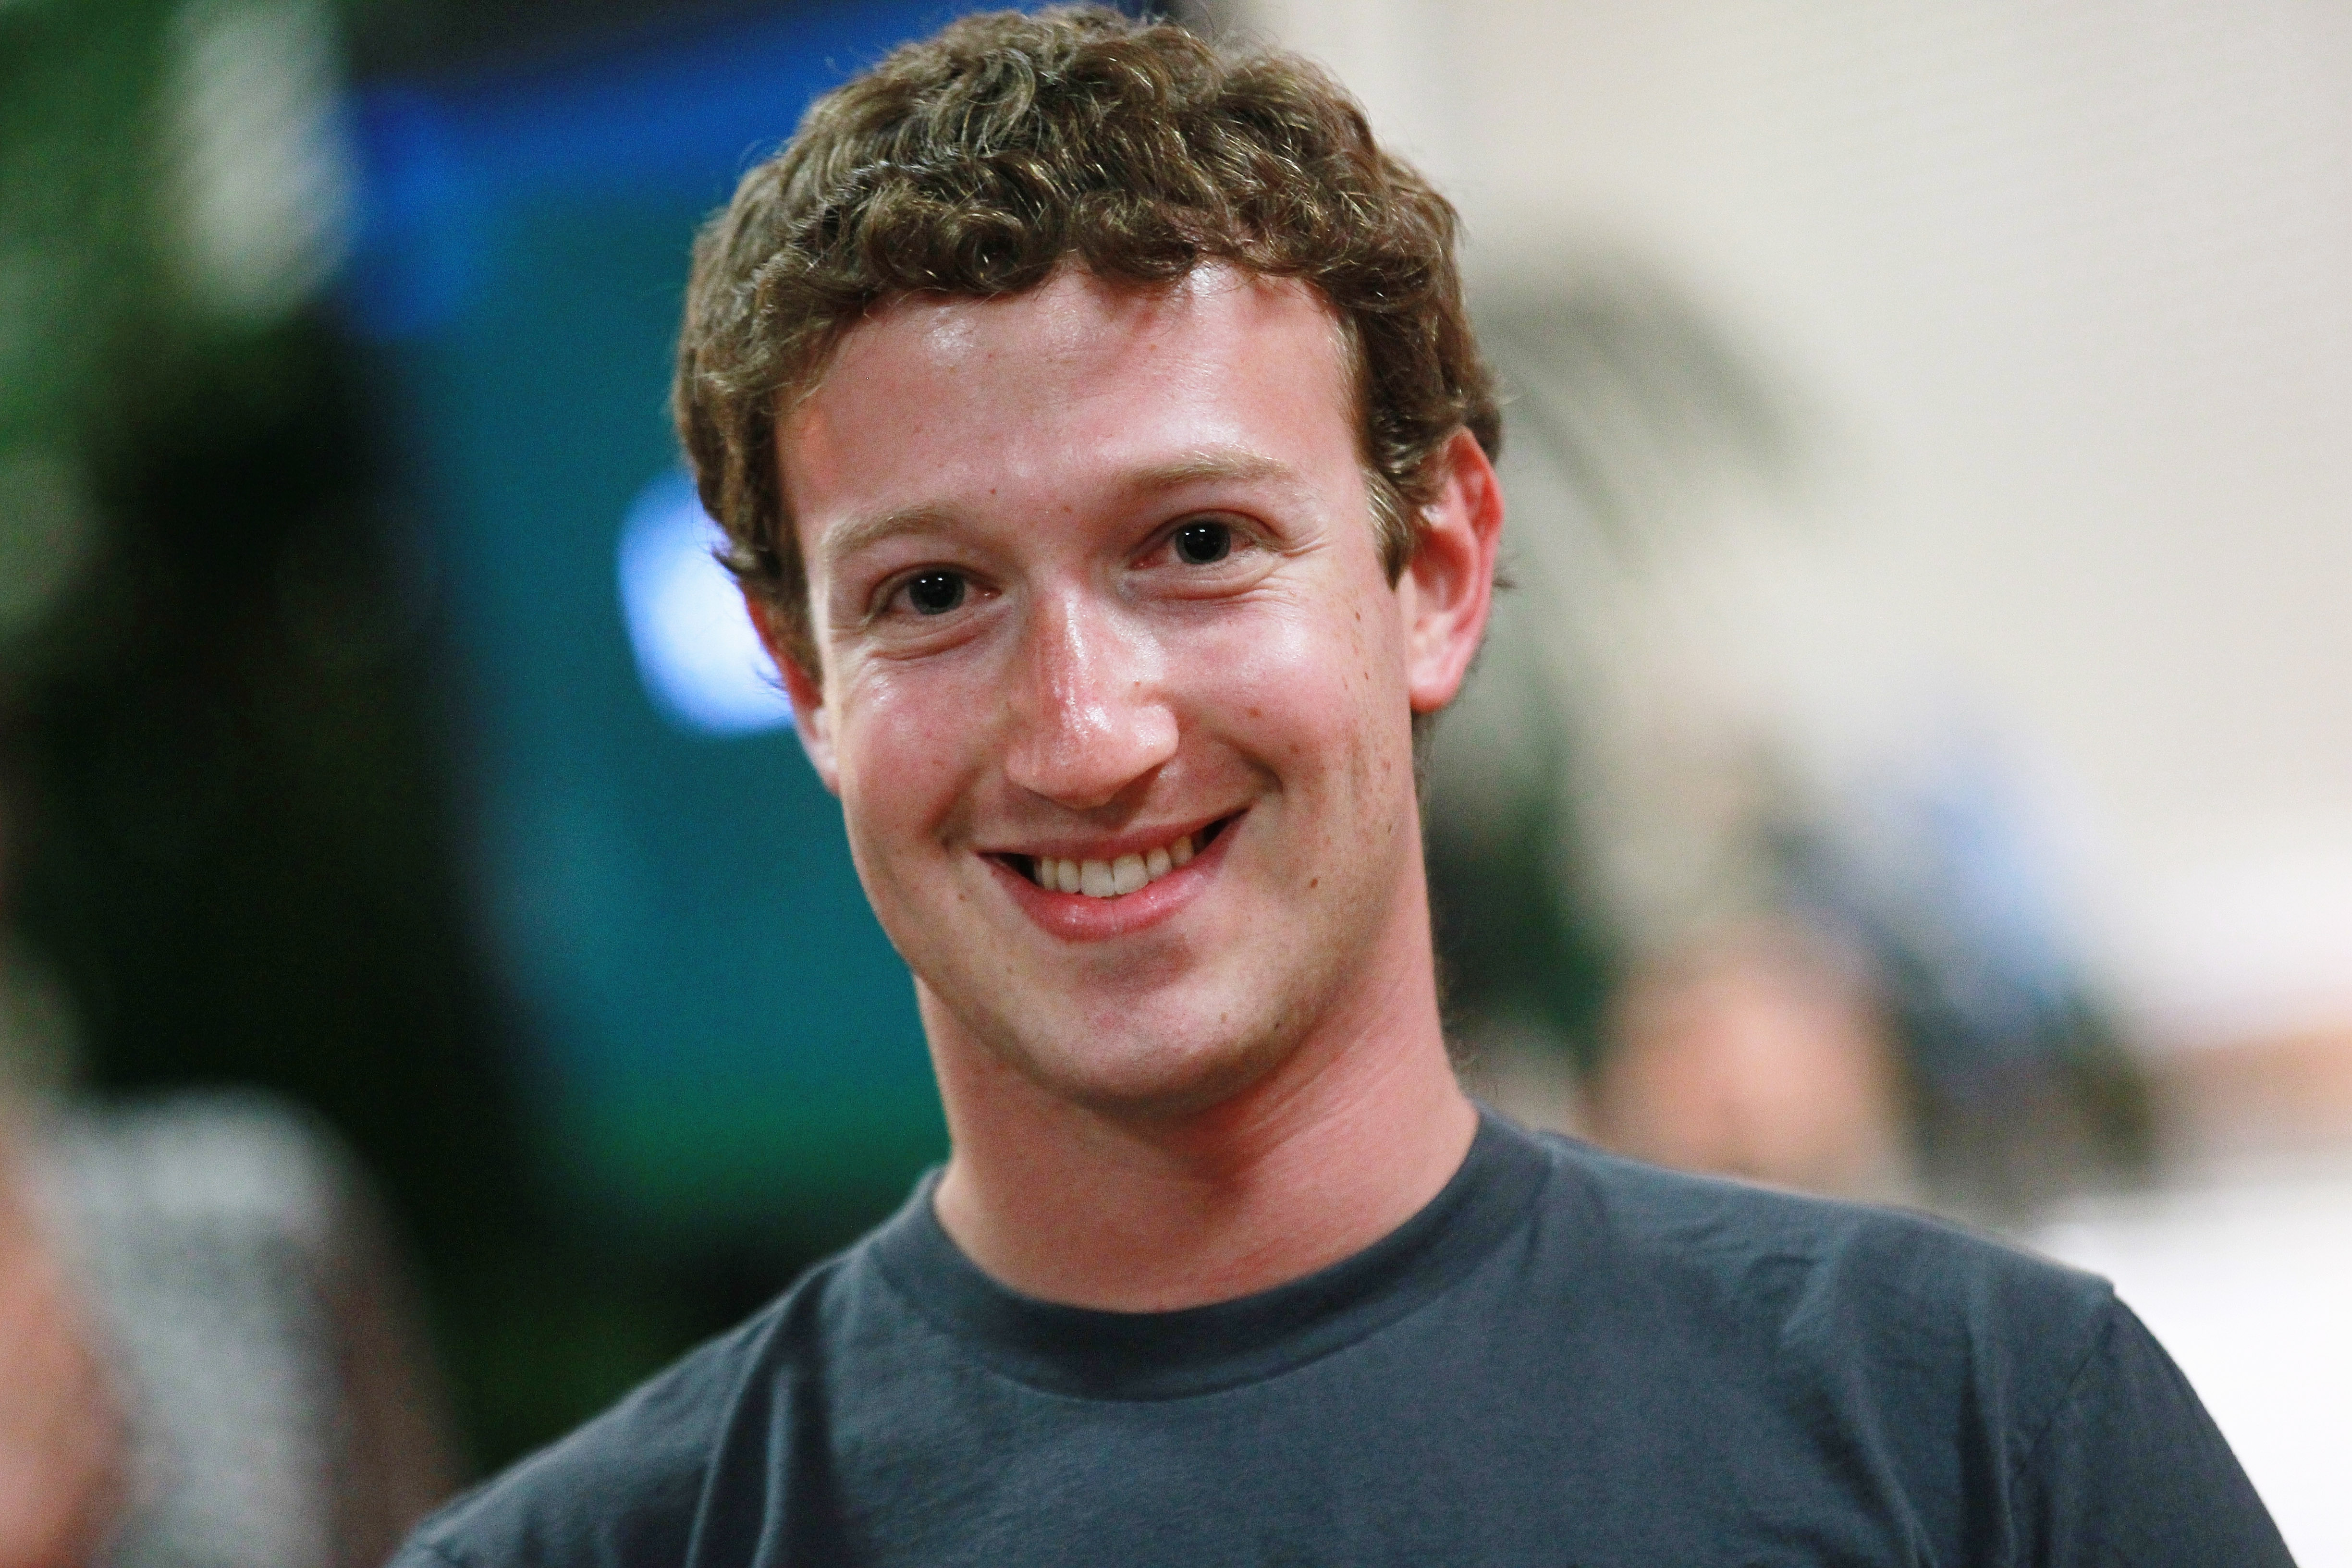 Facebook's Zuckerberg Wanted To Acquire Snapchat In $1B+ Deal